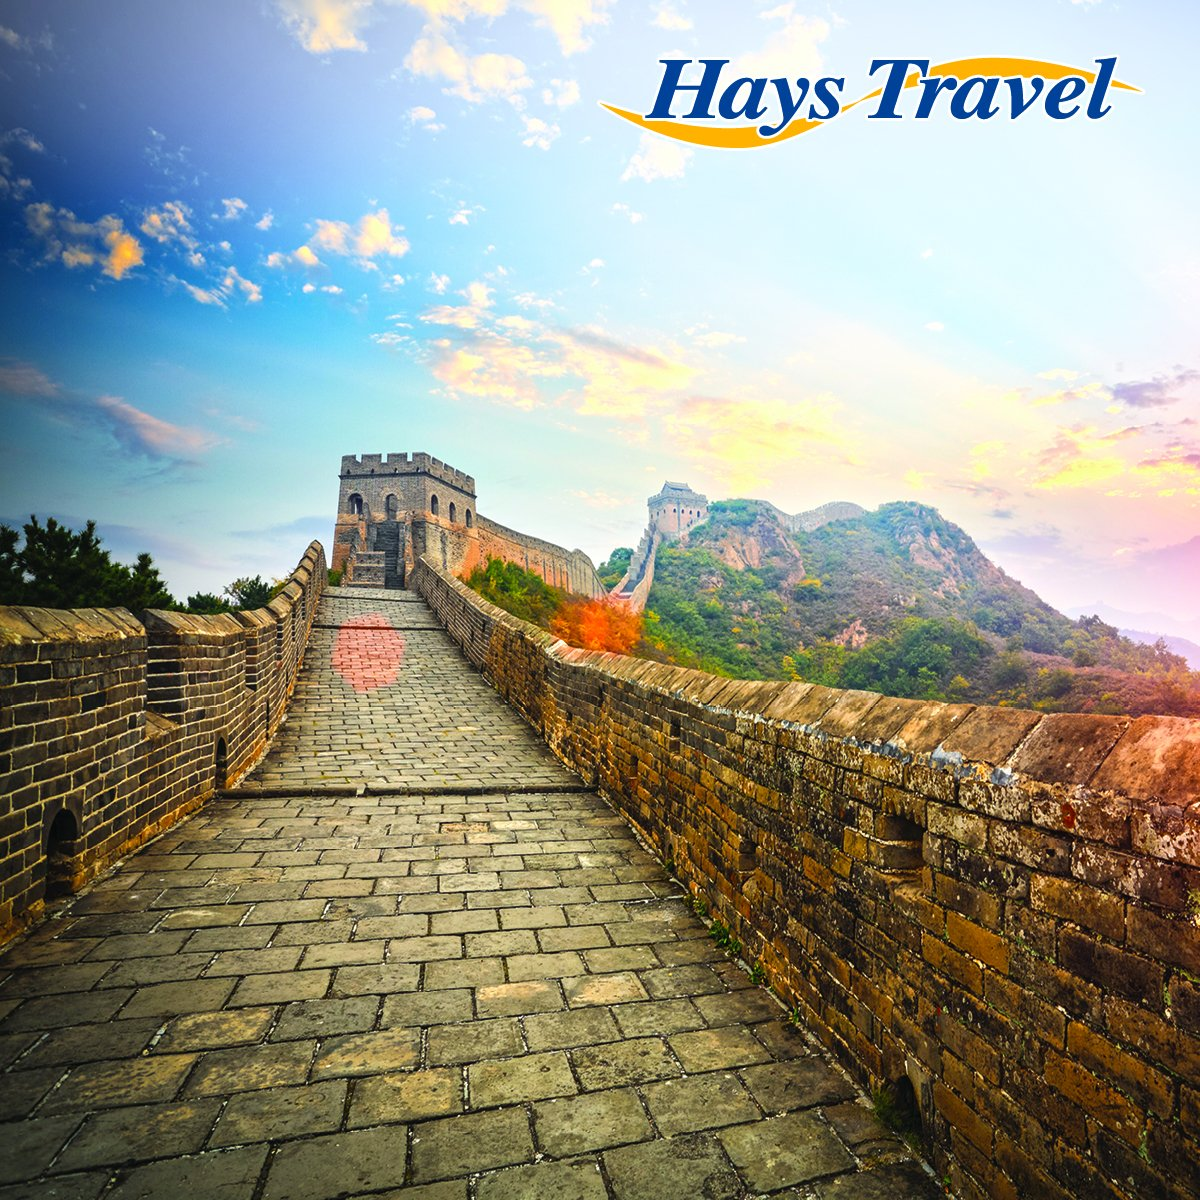 hays travel - photo #17